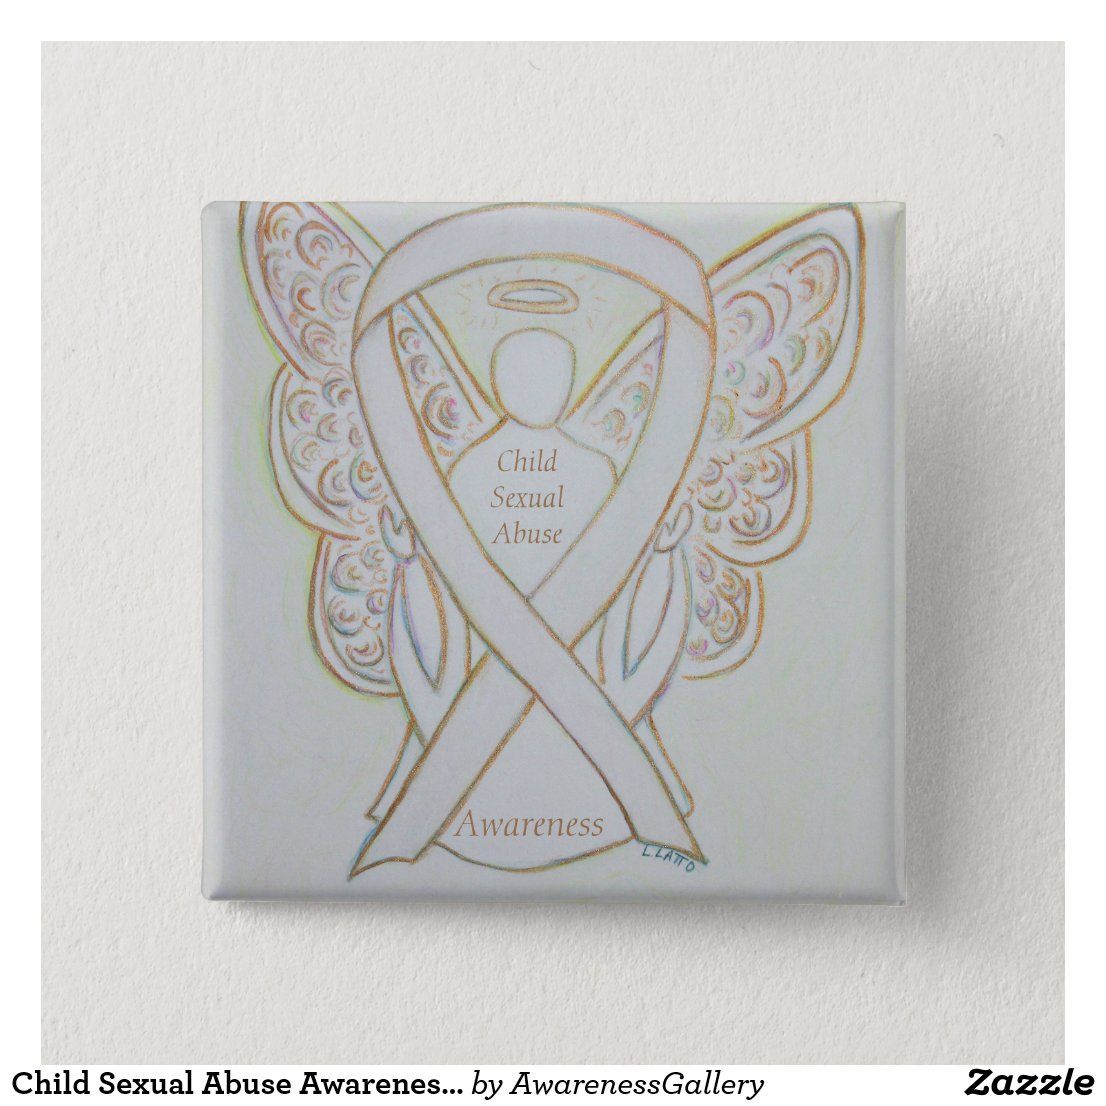 Child Sexual Abuse Awareness White Ribbon Pin